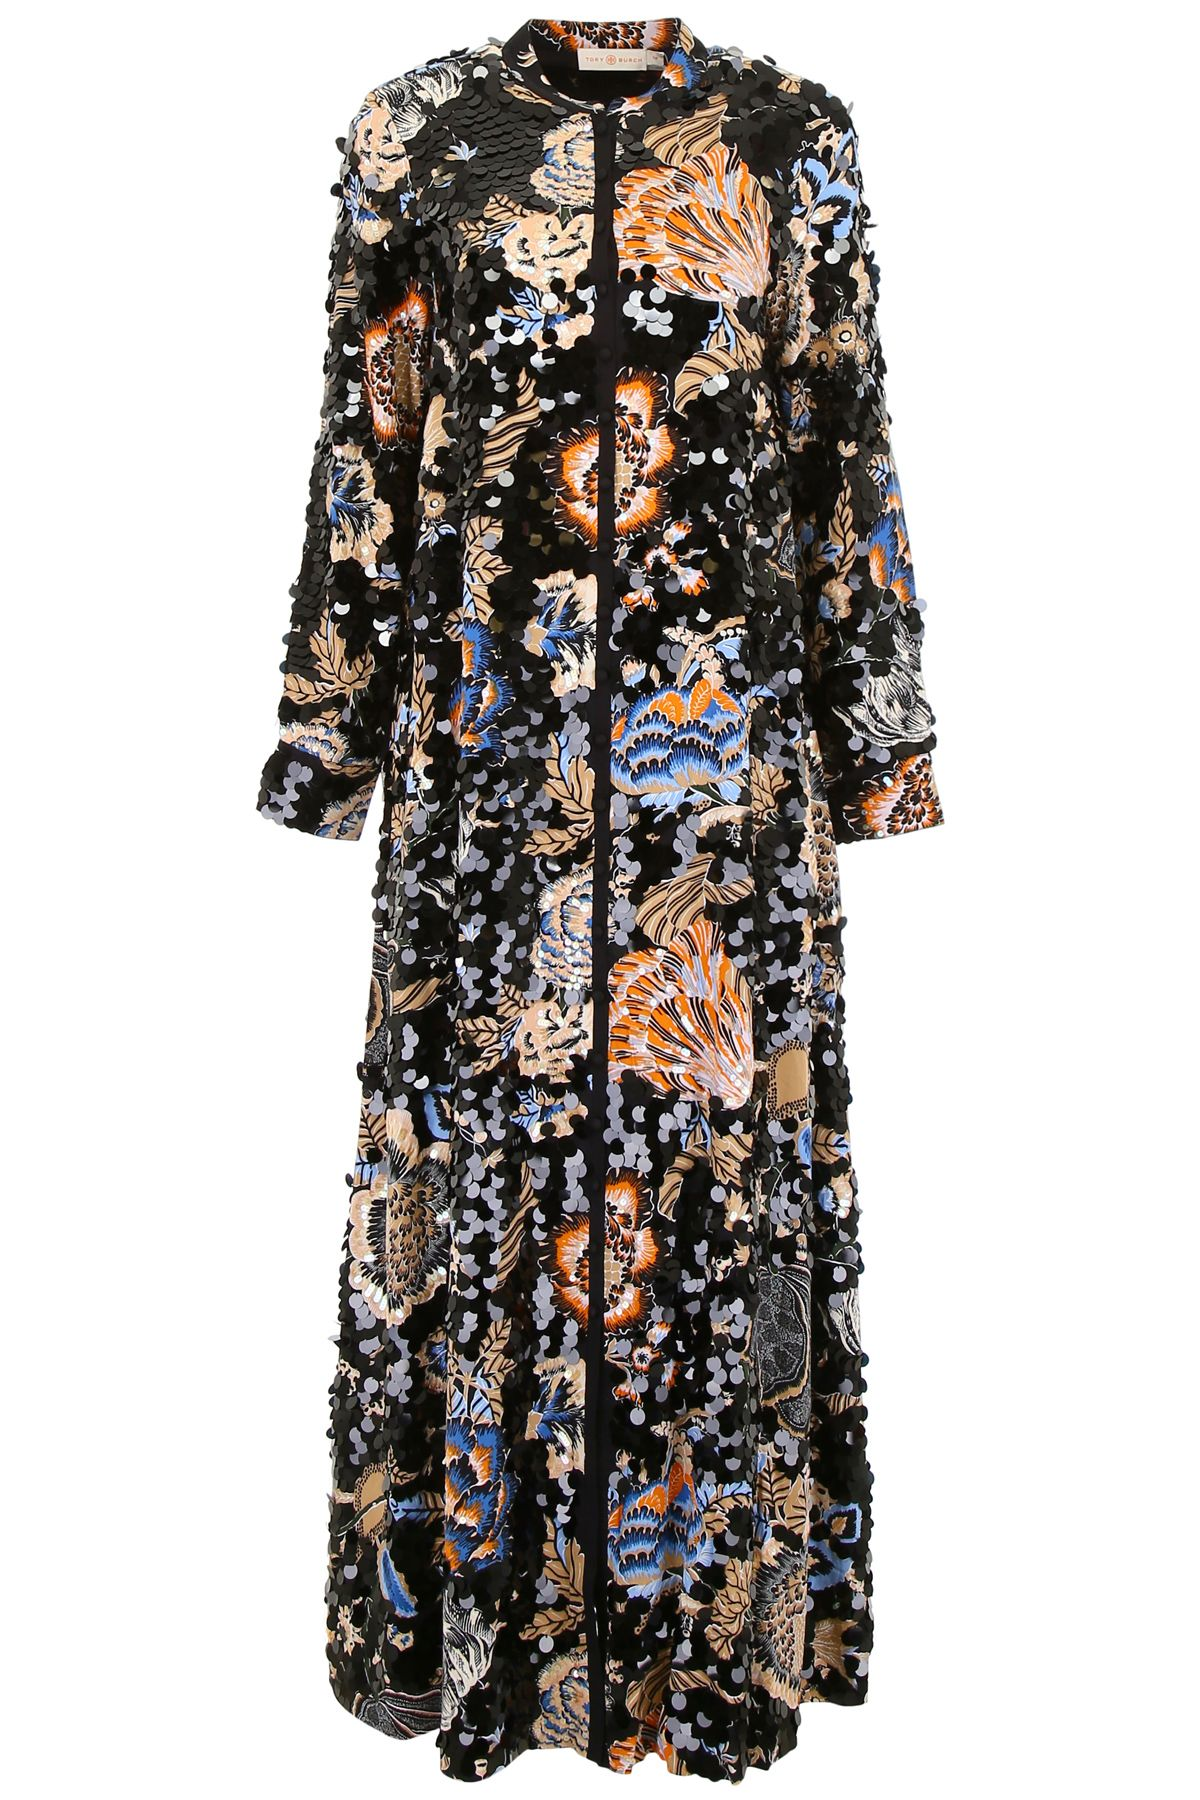 TORY BURCH DRESS WITH LARGE SEQUINS